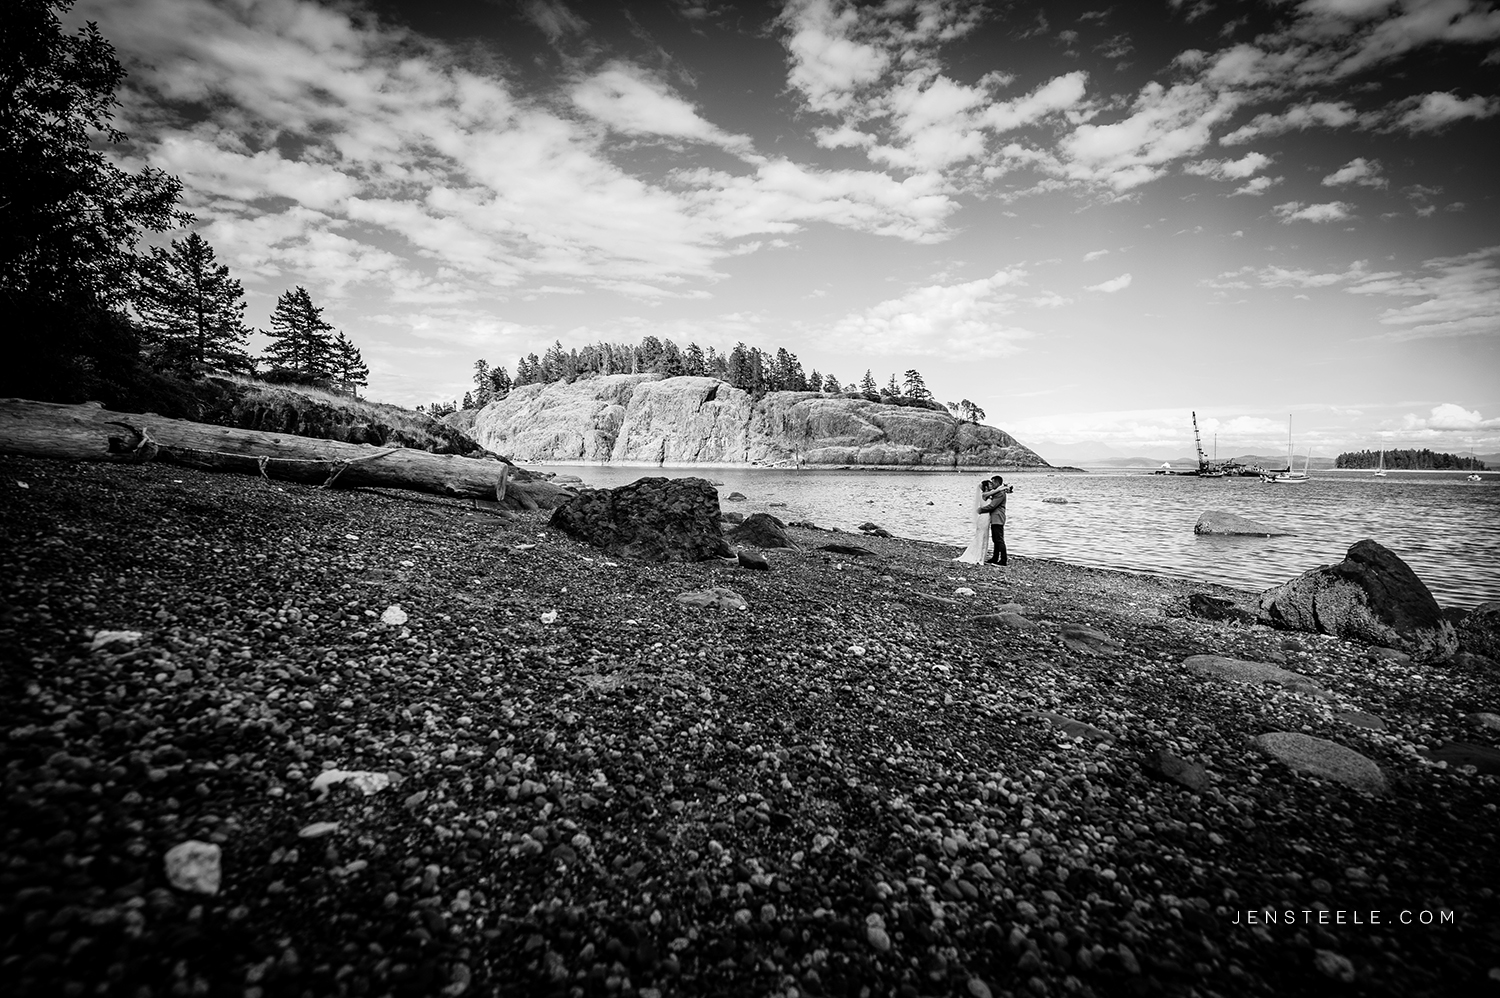 quadra_island_weddingphotography_jensteelephotography